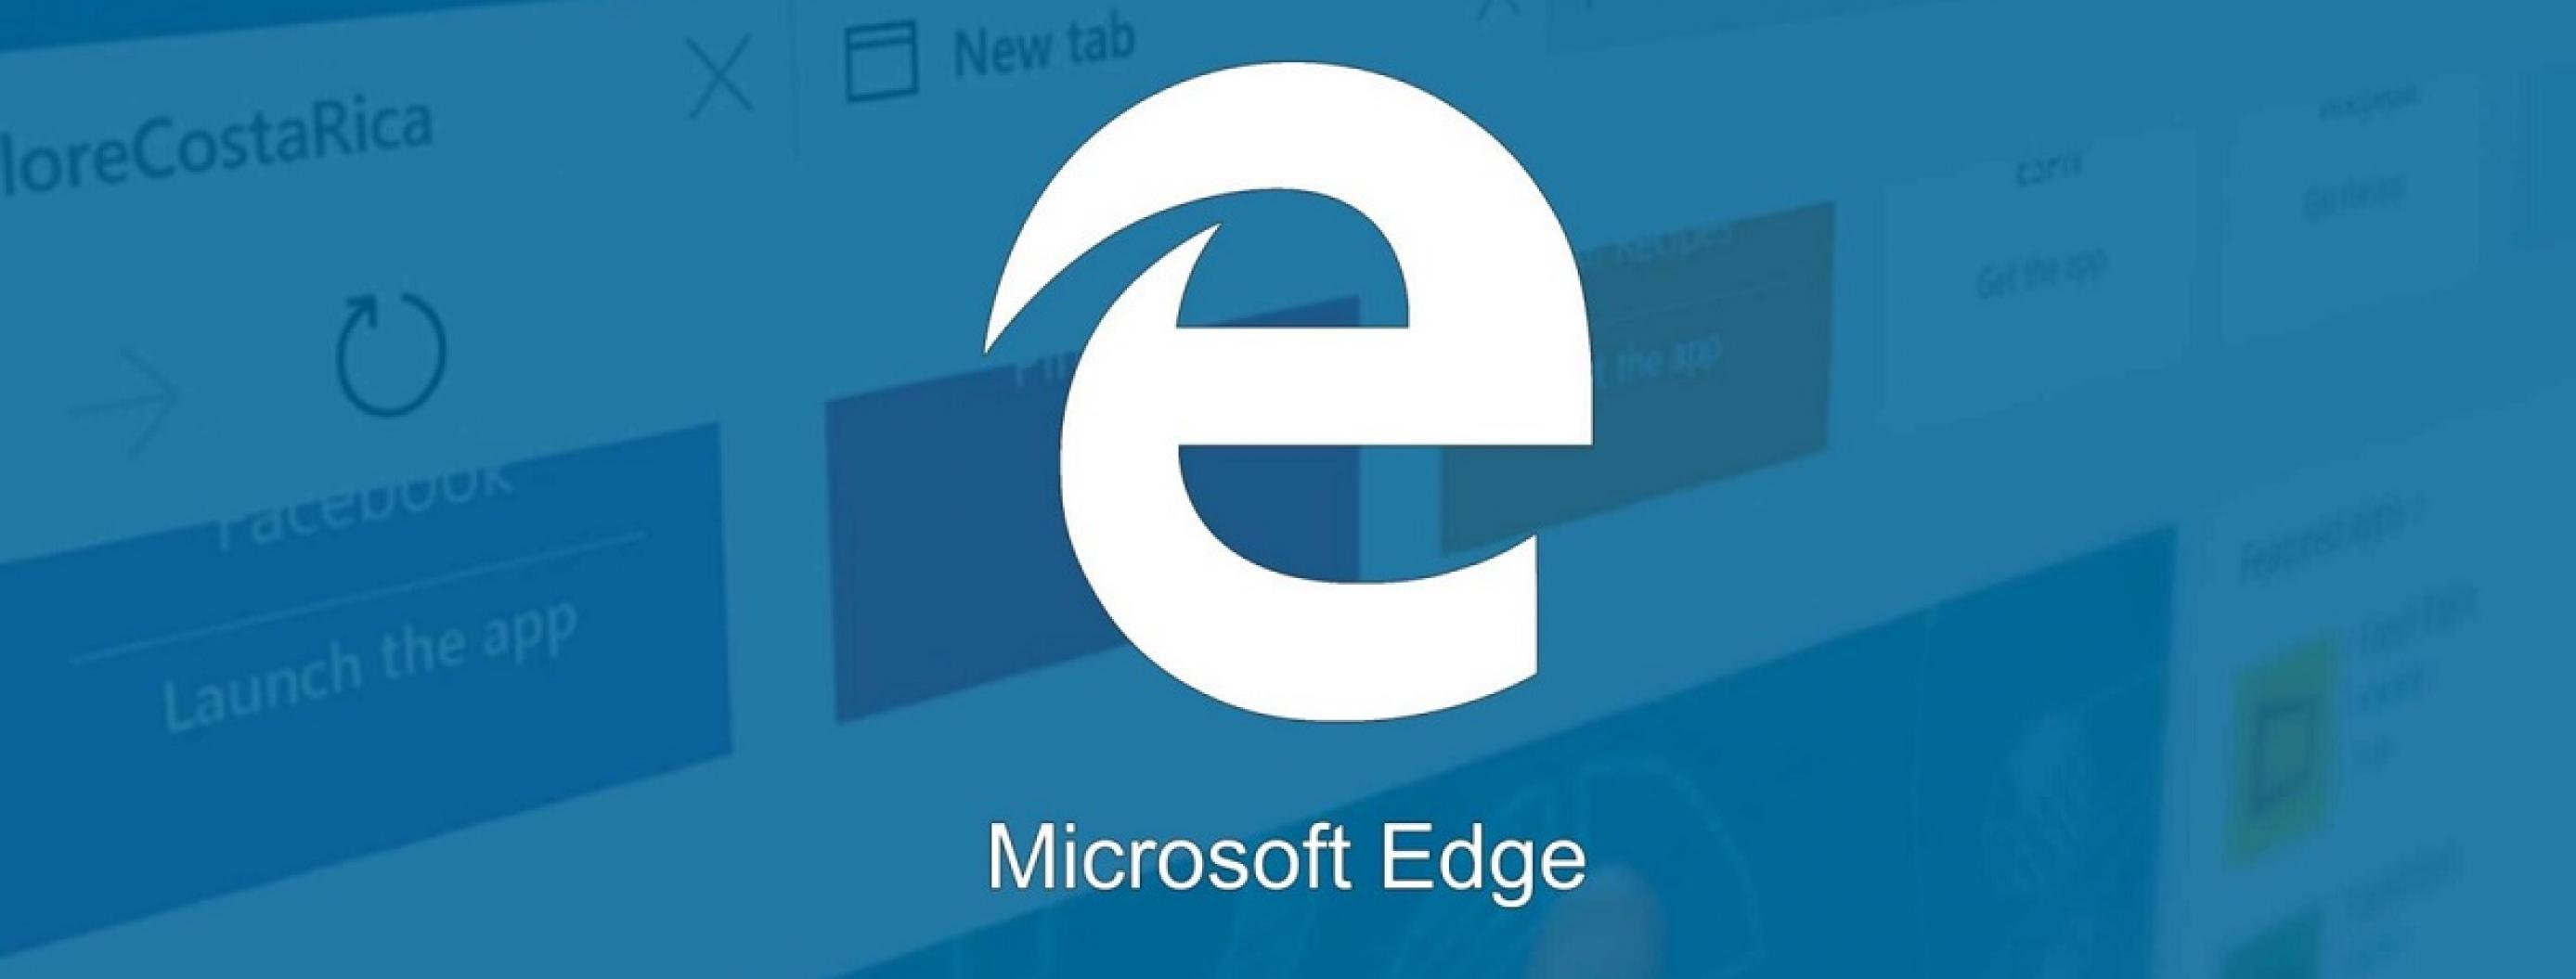 The New Chromium-Powered Microsoft Edge Browser is Now Available